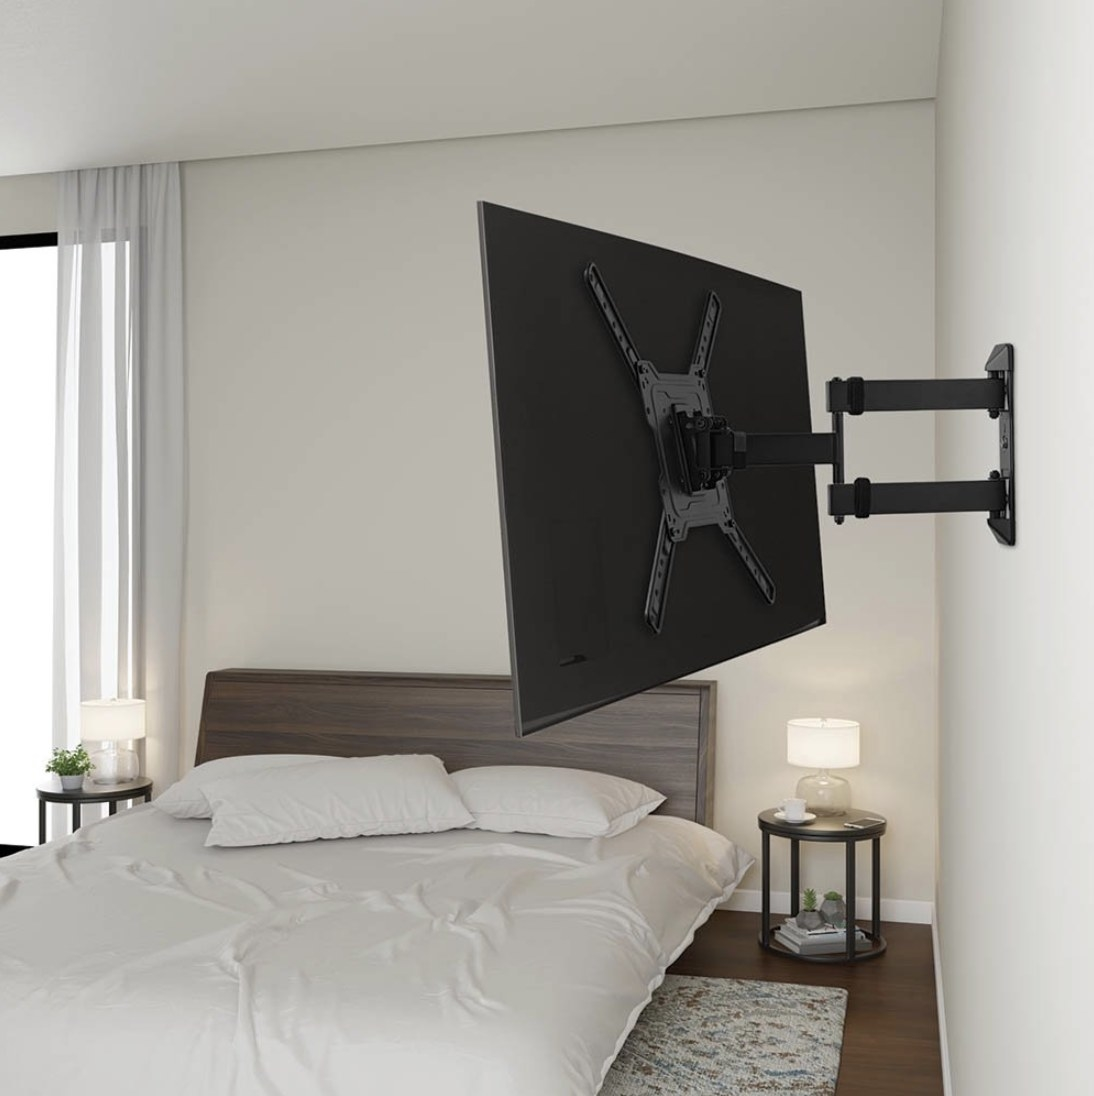 A TV mounted on the wall with a swivel mount in a bedroom